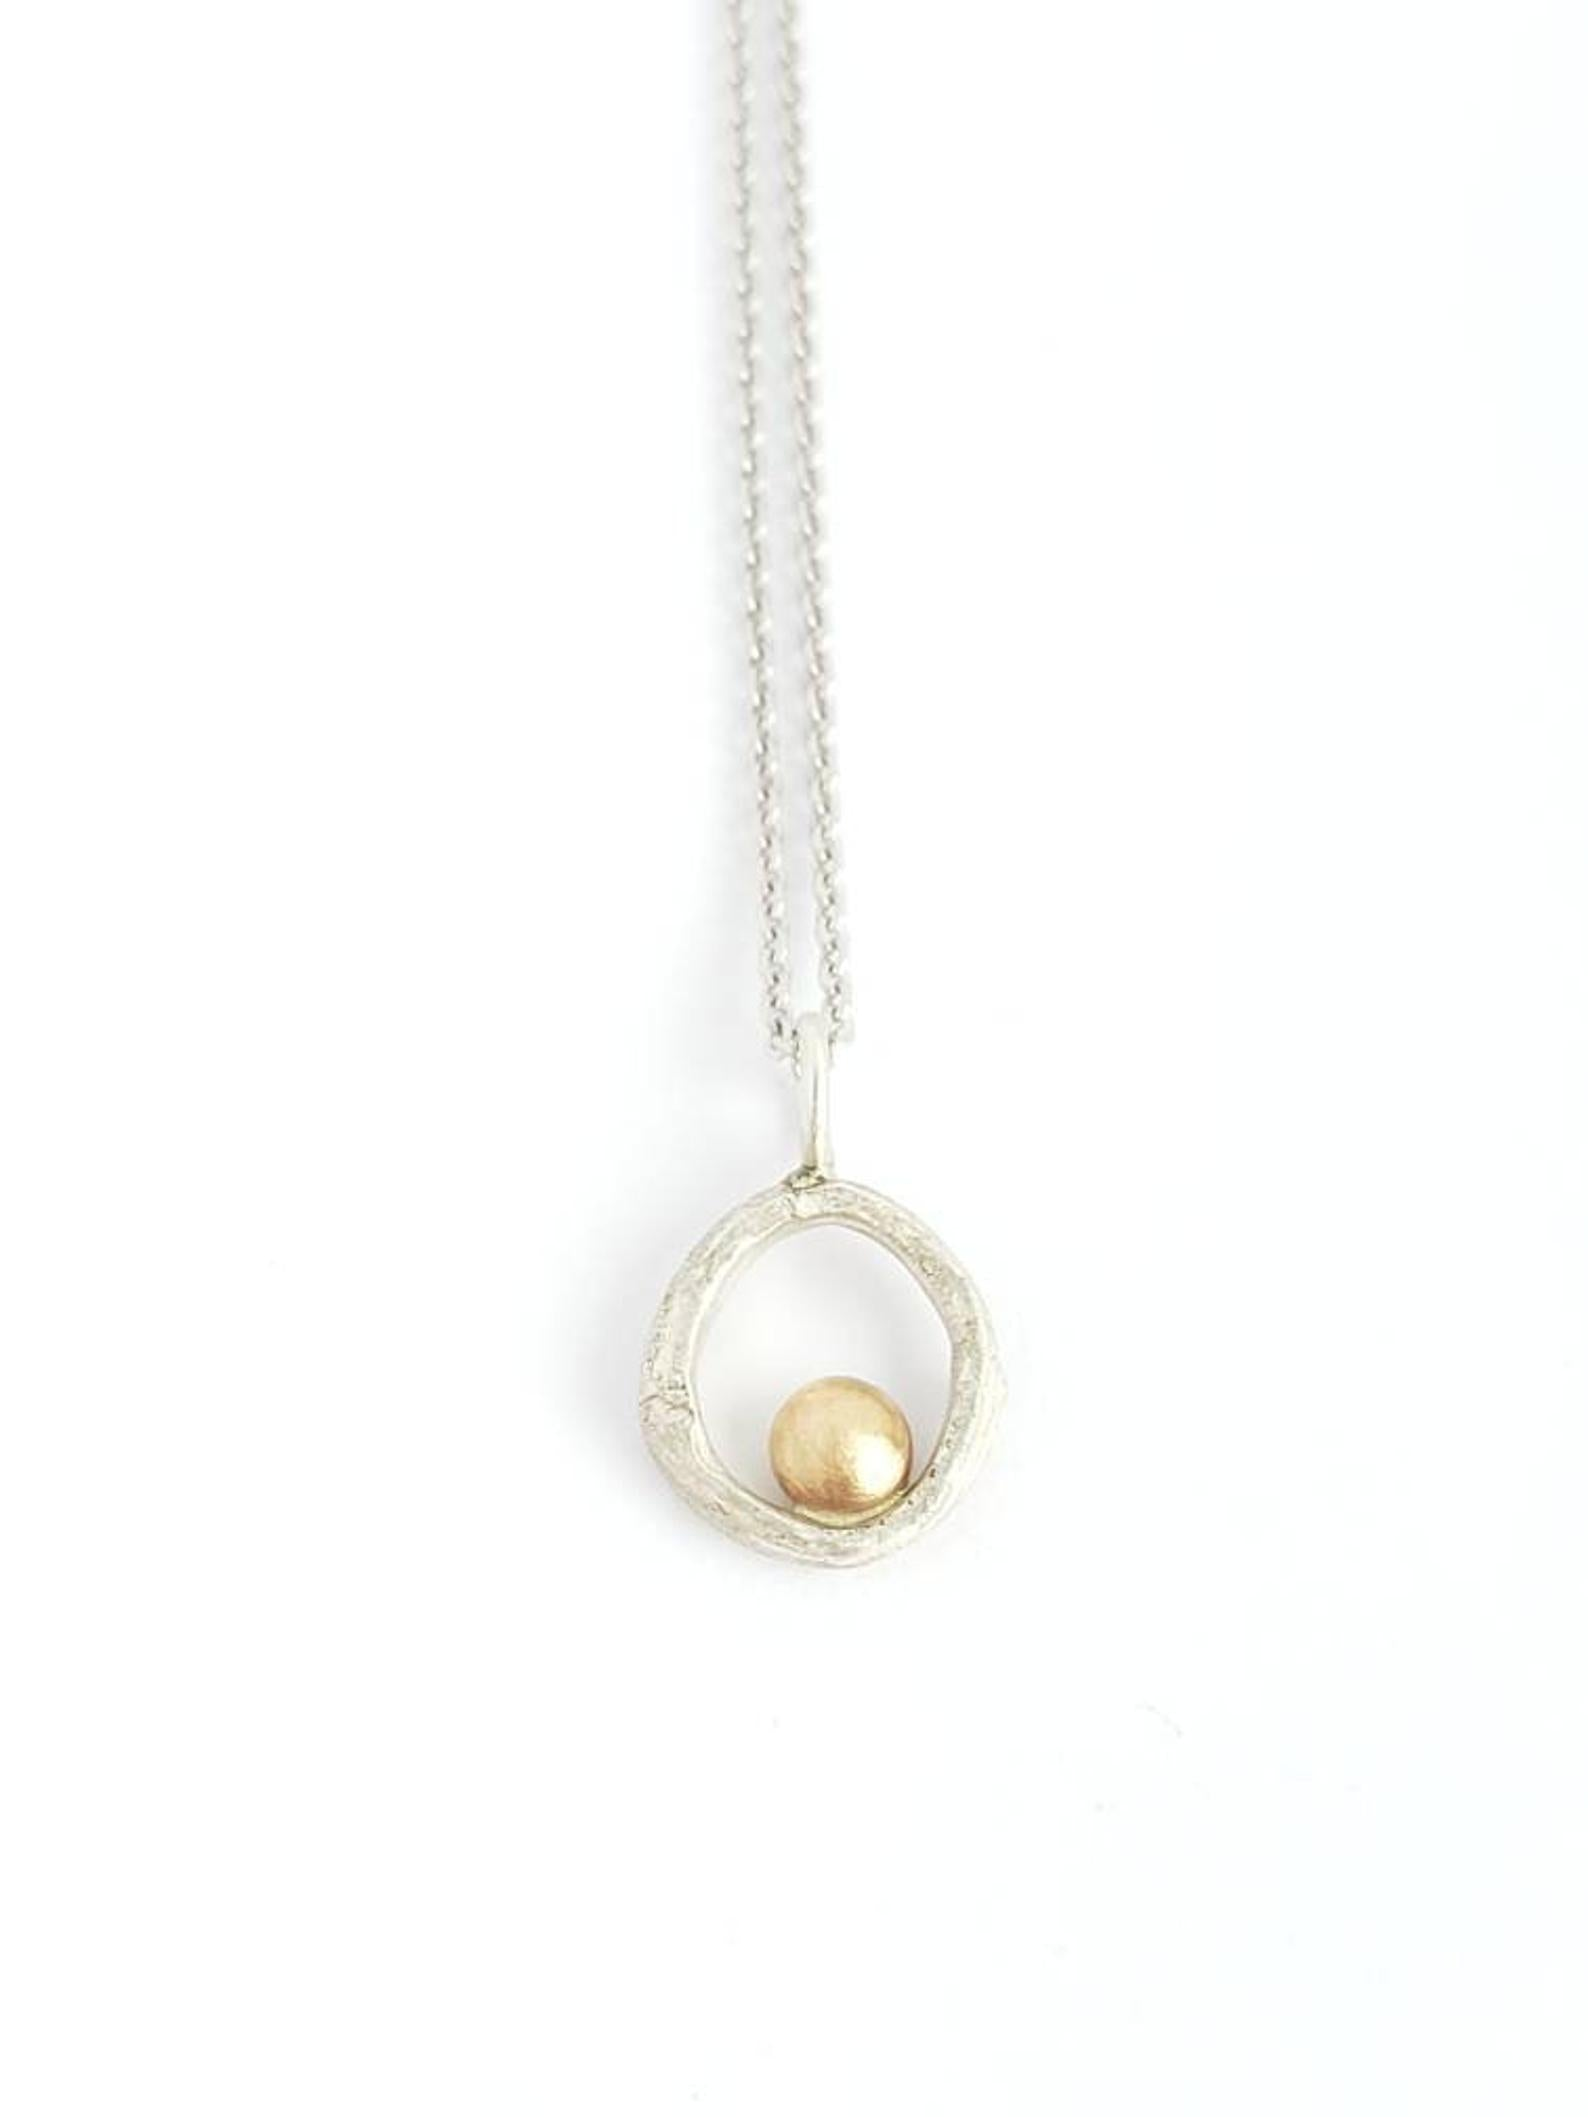 Sterling Silver, Twig Pendant with 14k Gold Pebble